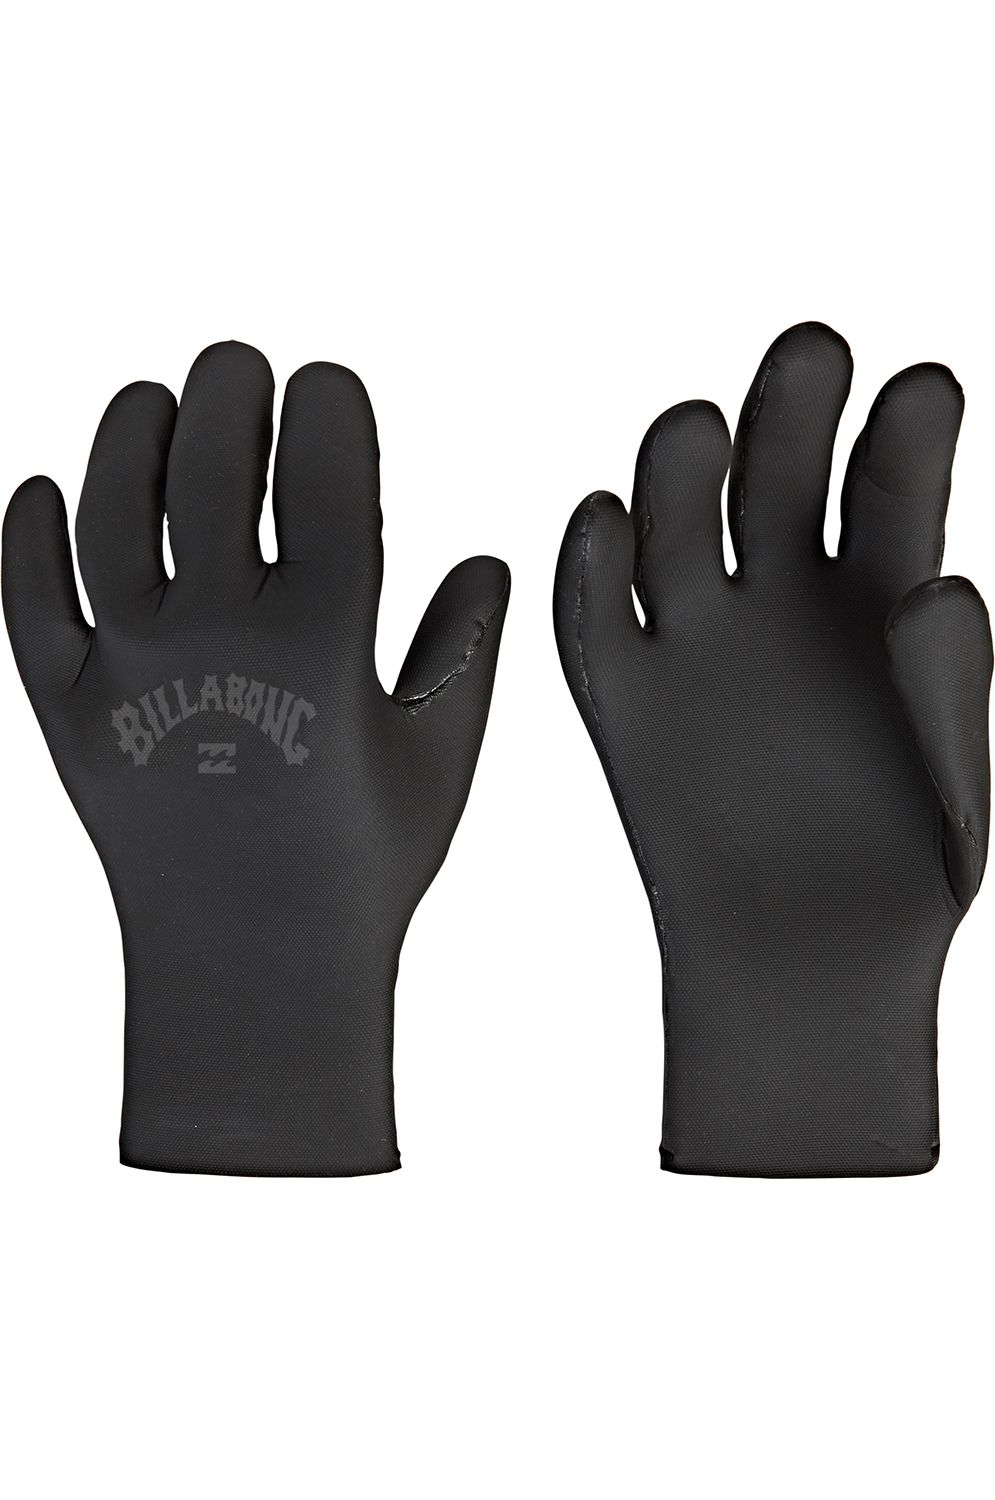 Billabong Neoprene Gloves 2MM ABSO 5 FINGER Black